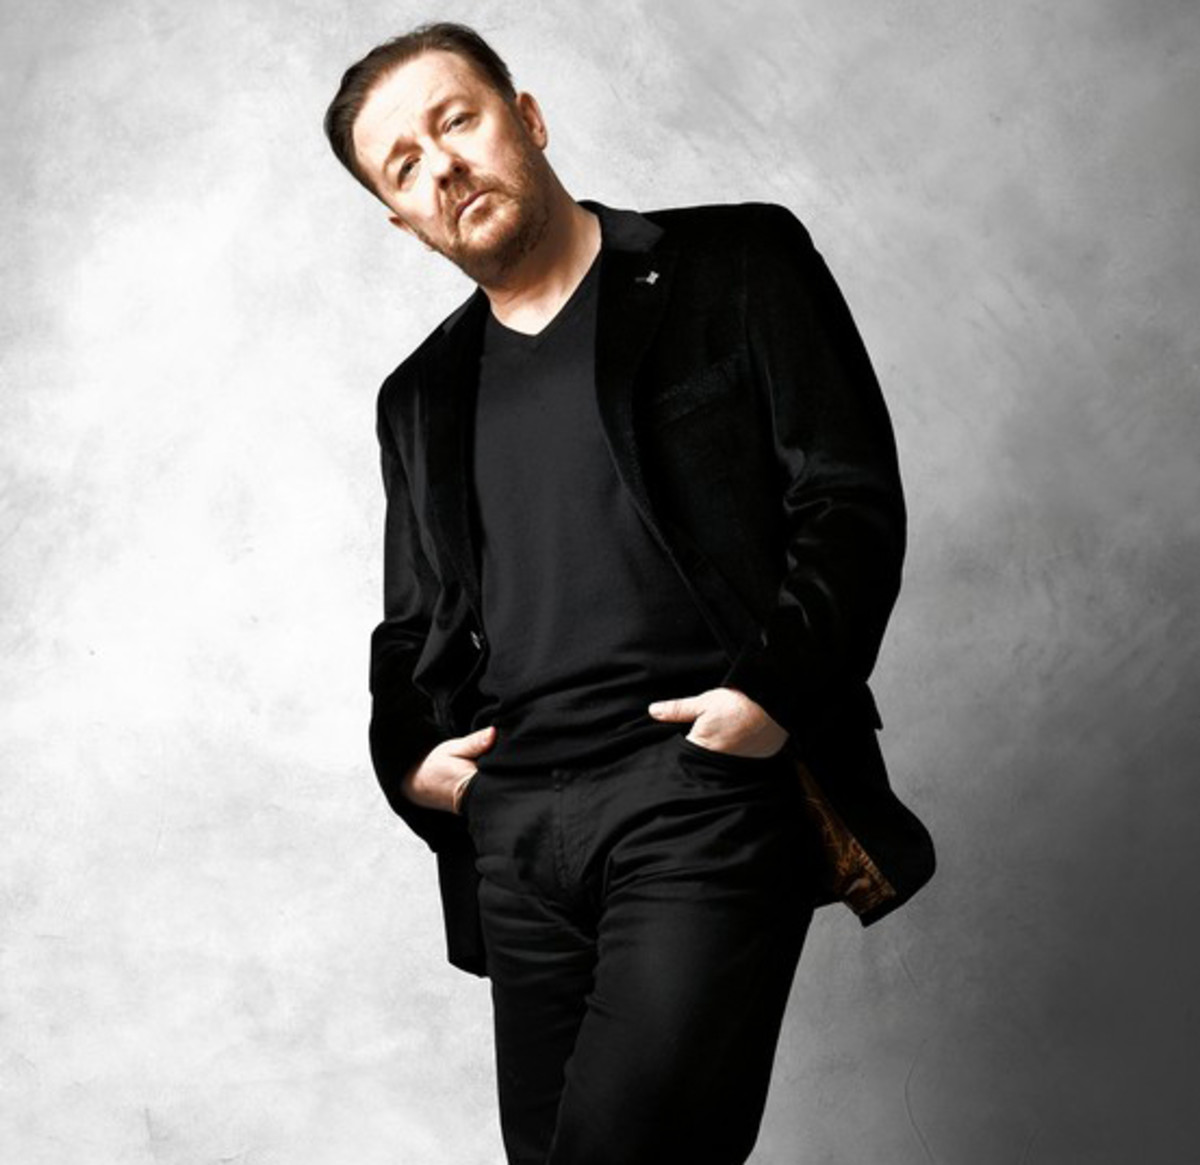 A definitive ranking of Ricky Gervais' TV shows!